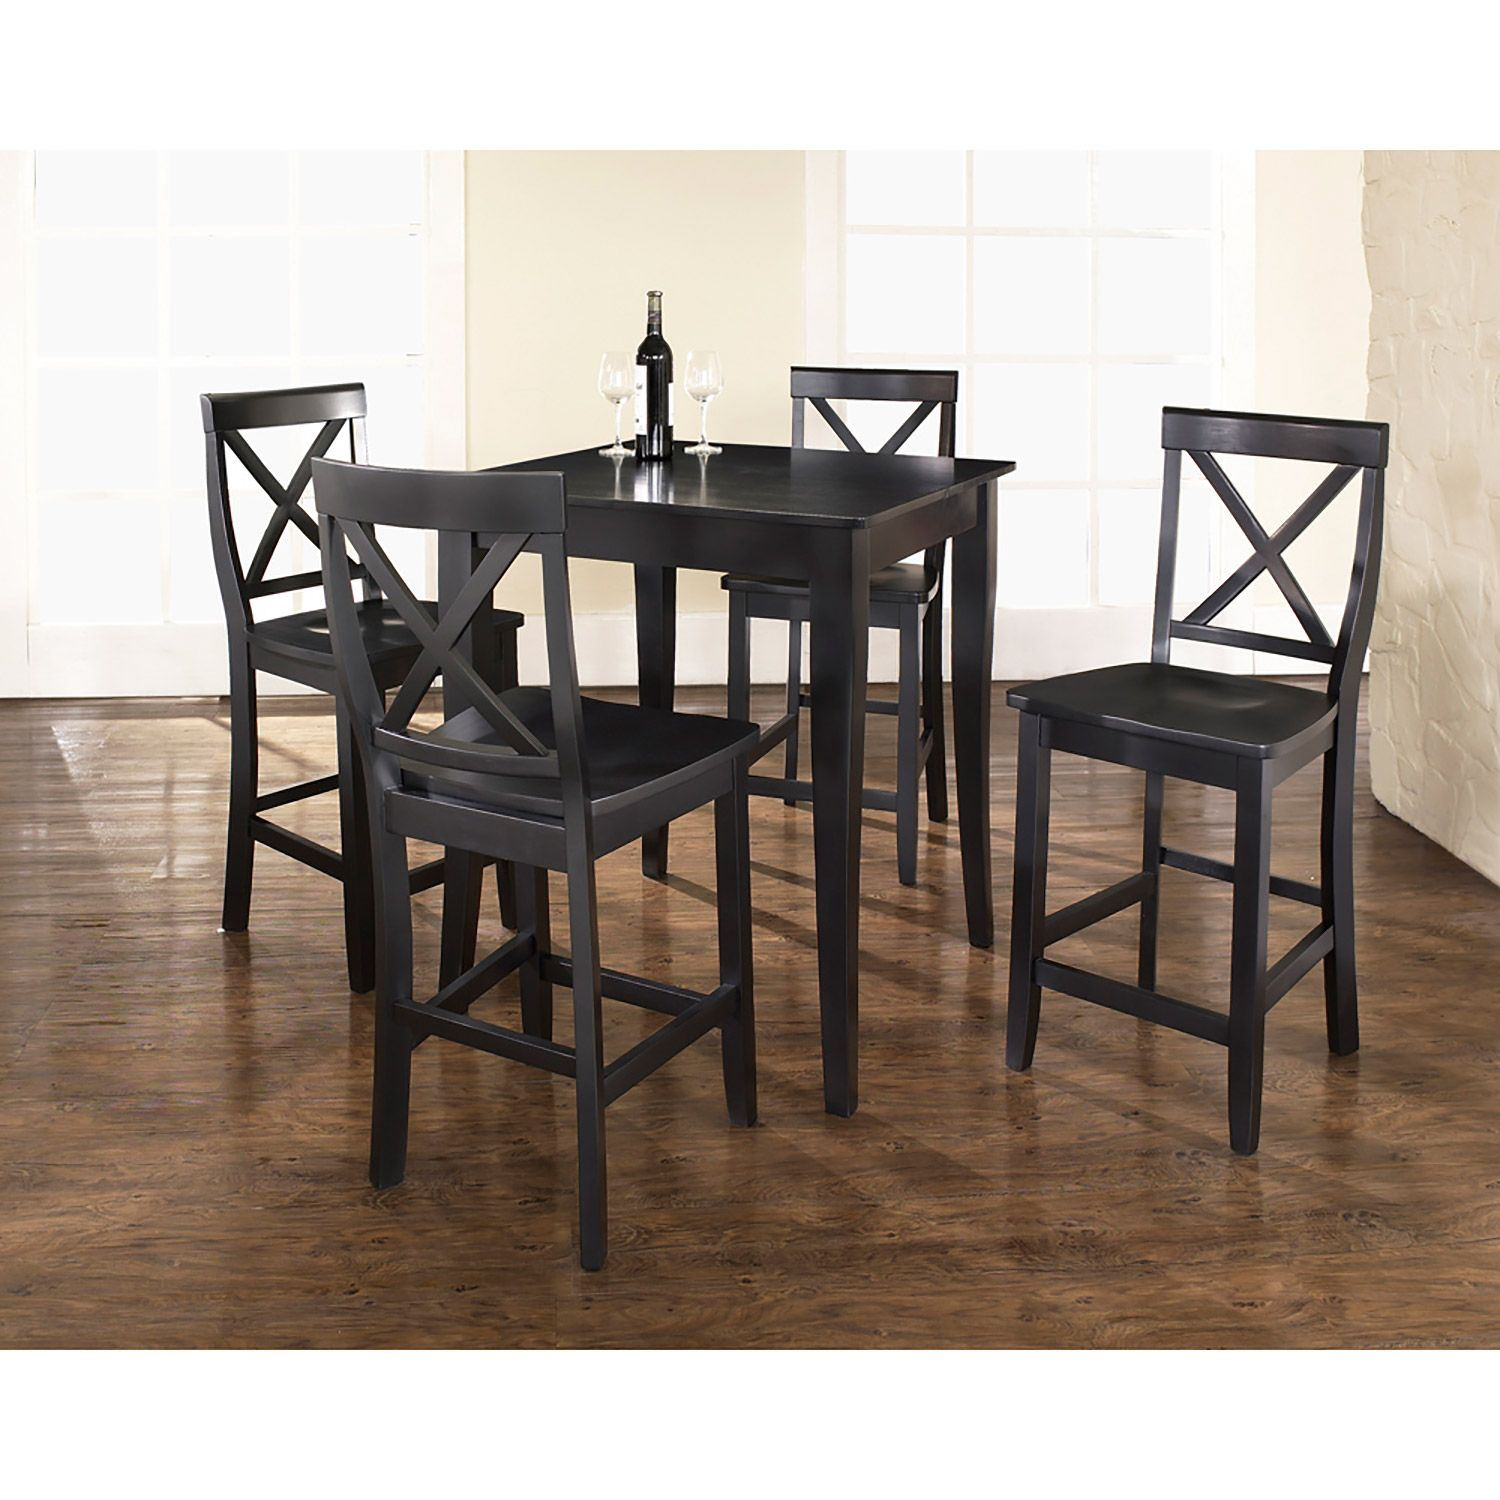 5 piece pub dining set black d kd520001bk crosley for 5 piece dining set